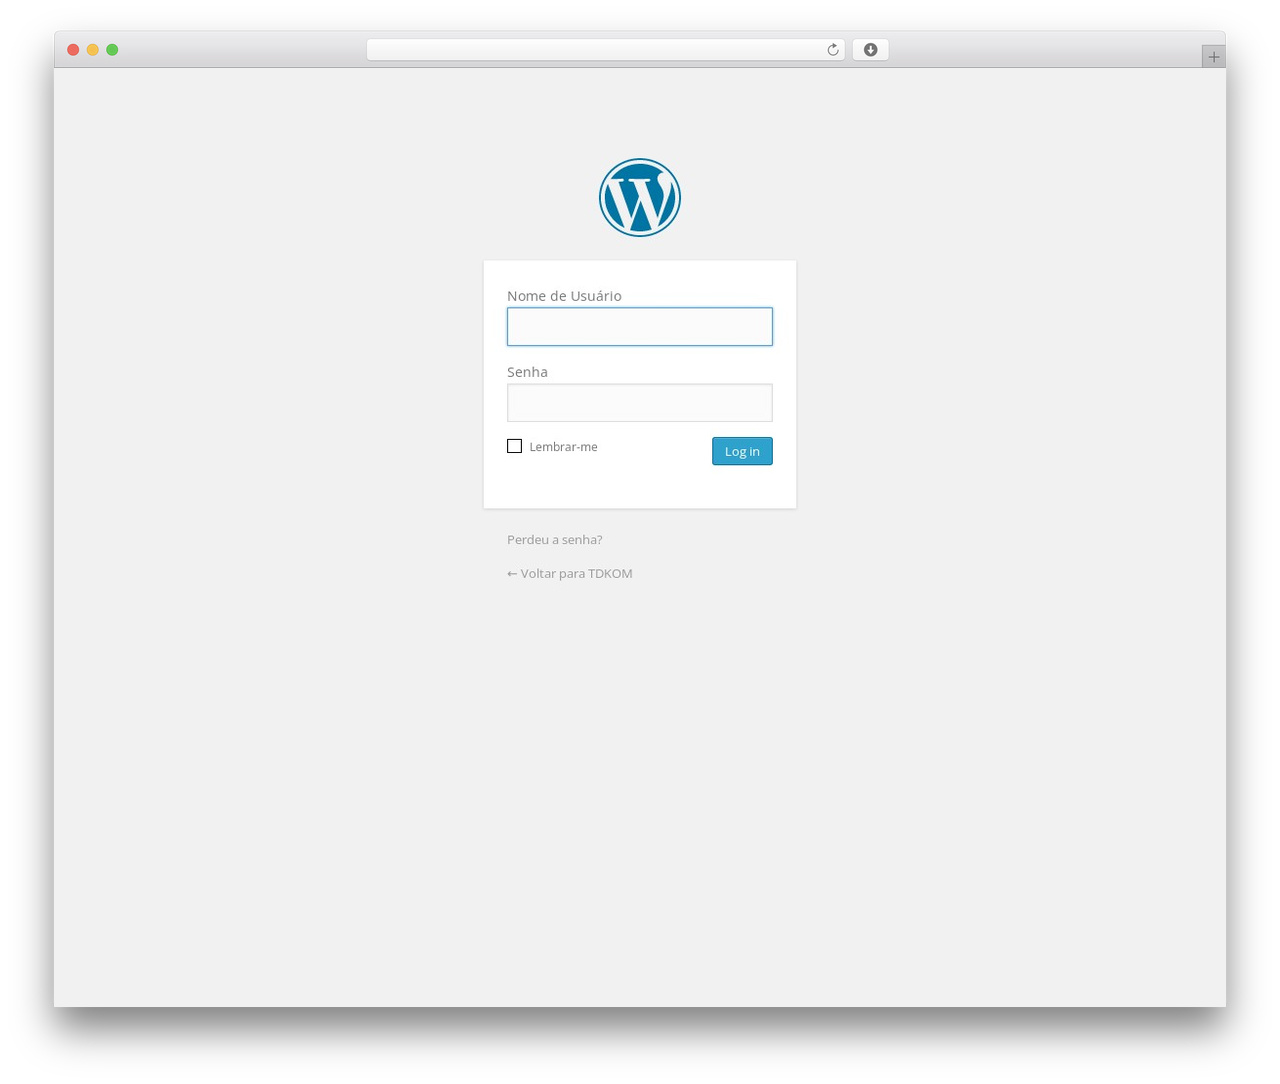 Timeline WordPress theme by Serifly - tdkom.com-intranet-wp-login.php